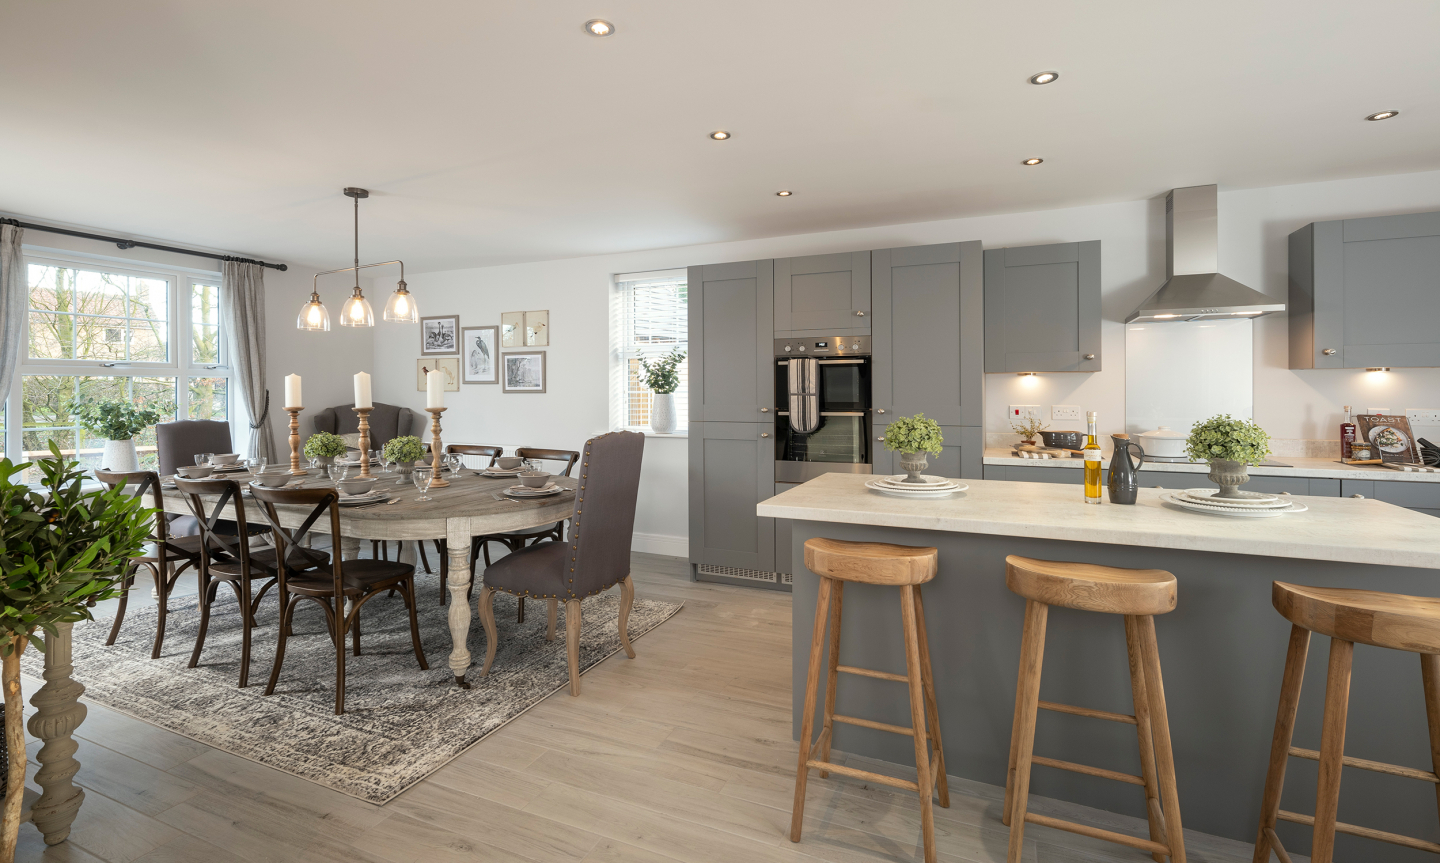 New Homes In Holtby York Mulgrave Properties